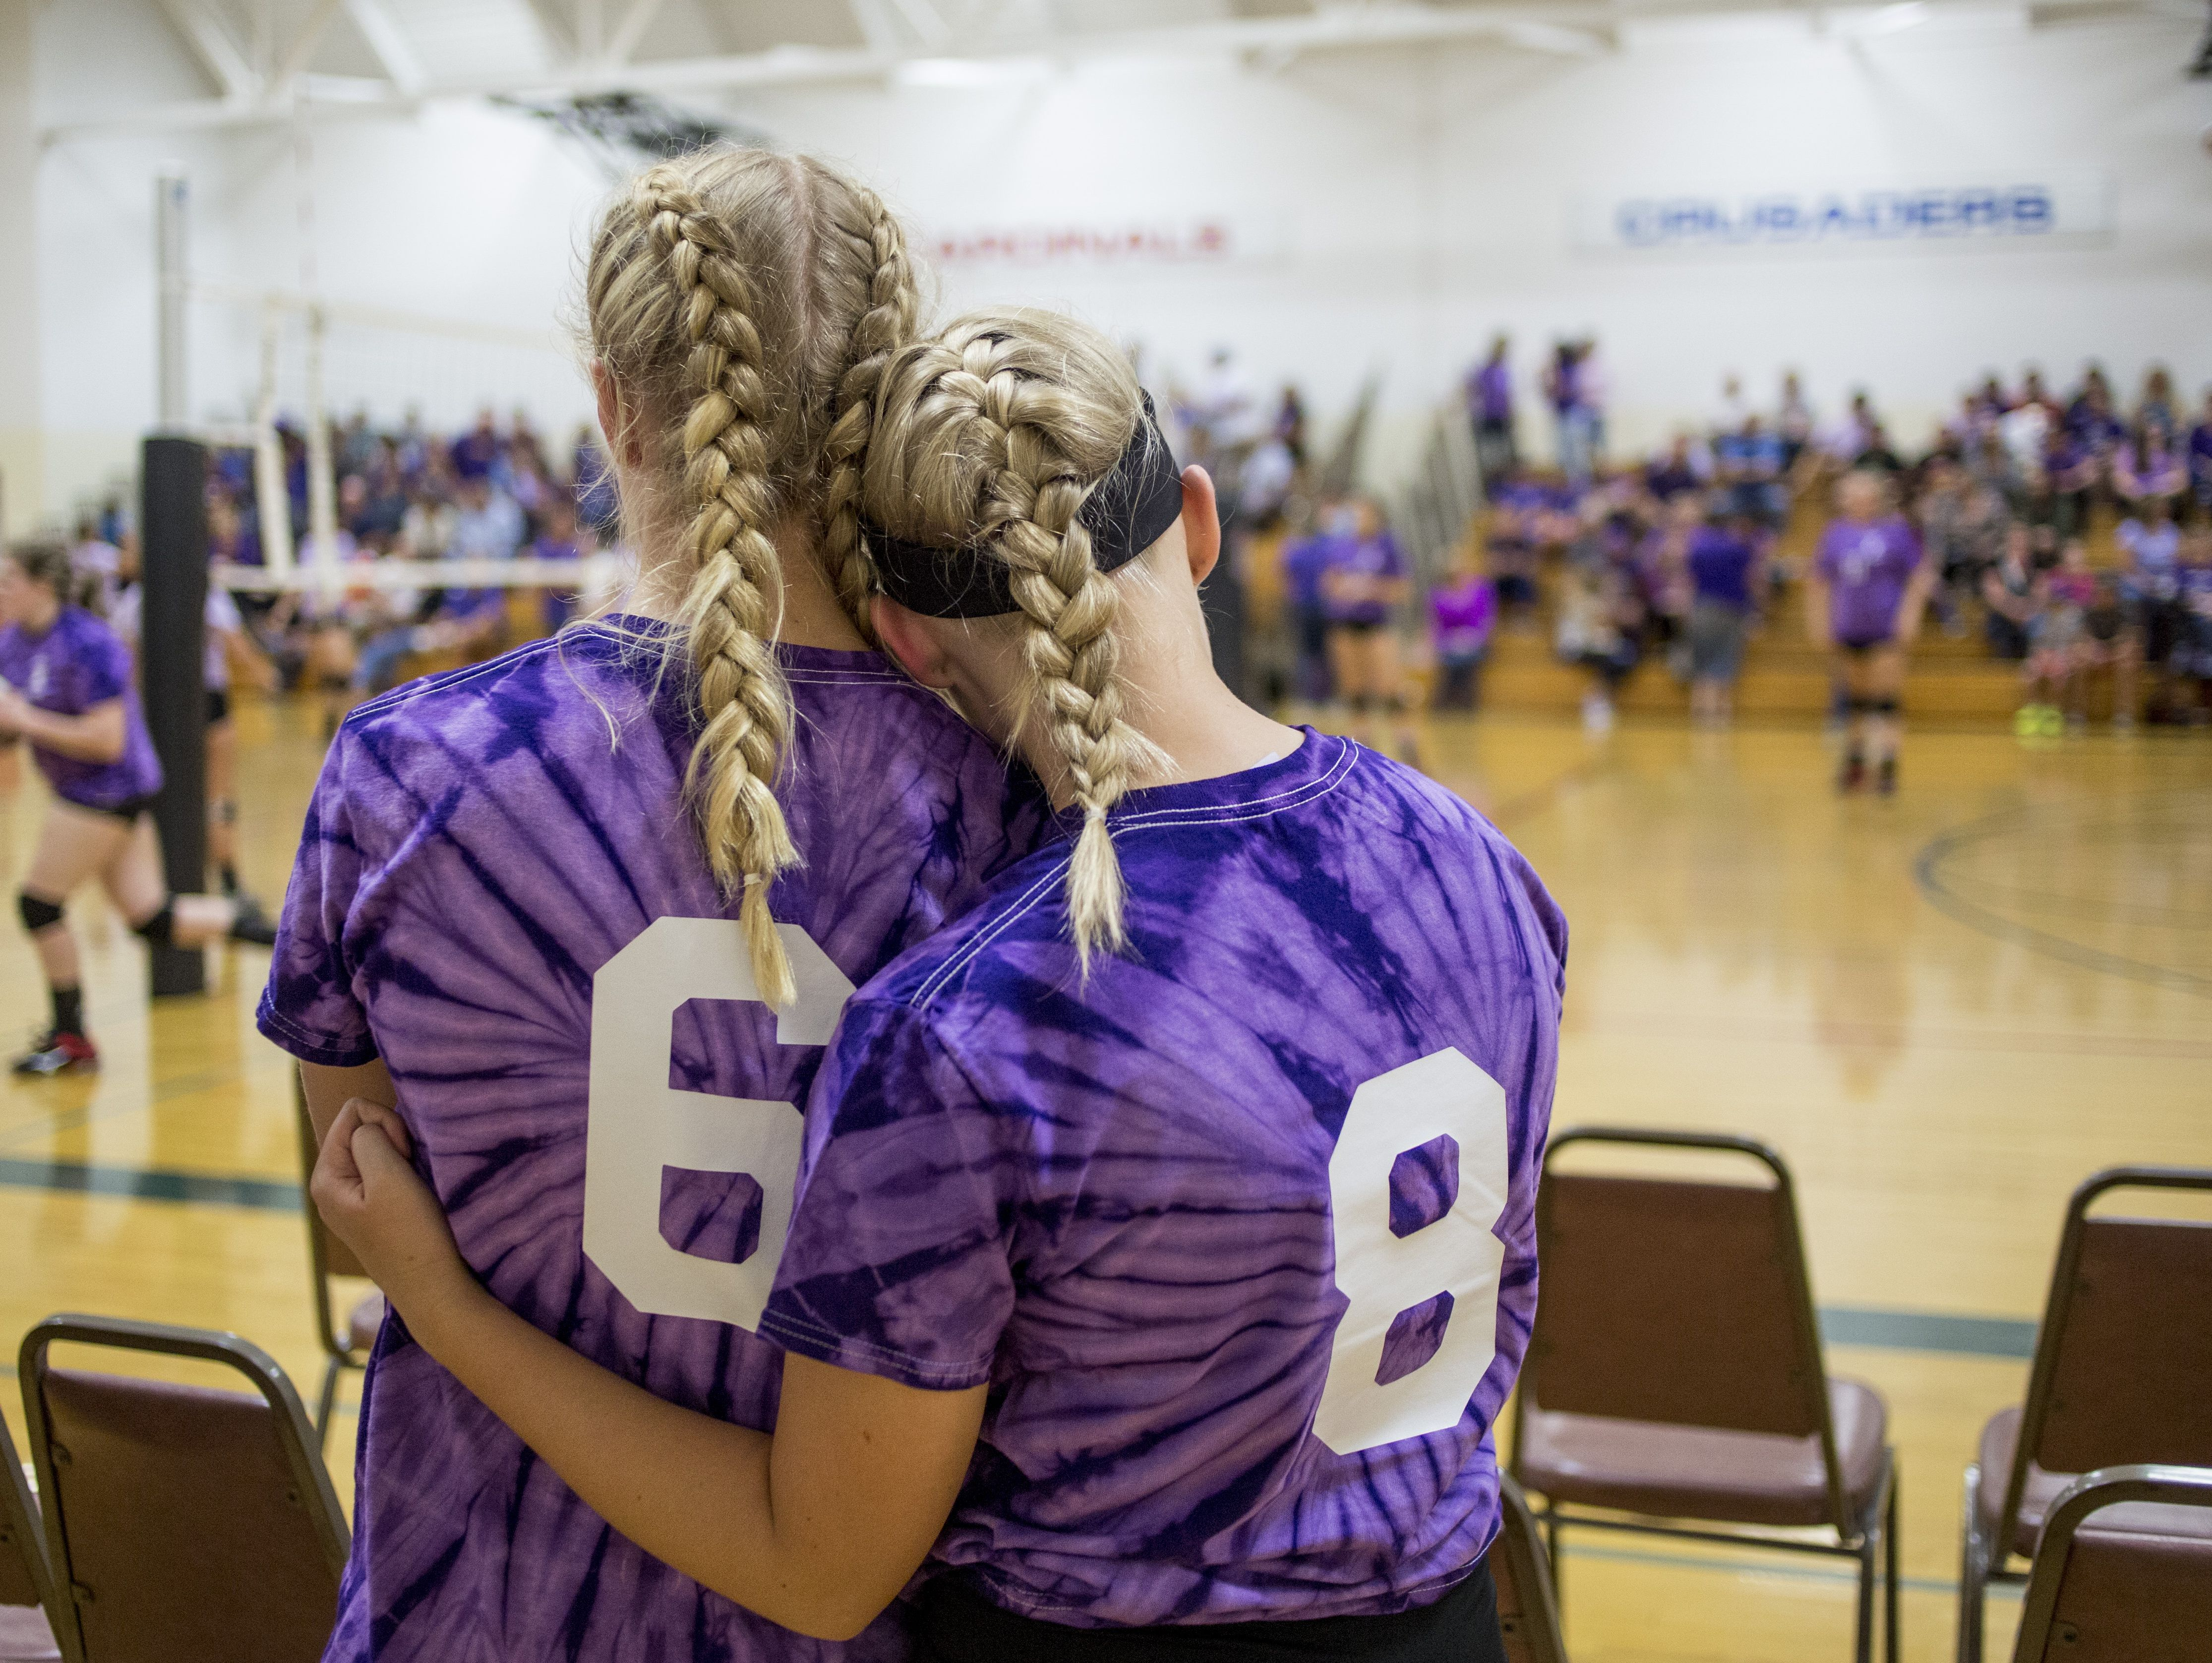 Junior varsity players Lauren Luzynski and Alexis Carriere hug before a volleyball game Wednesday, Oct. 5, 2016 at Cardinal Mooney High School.